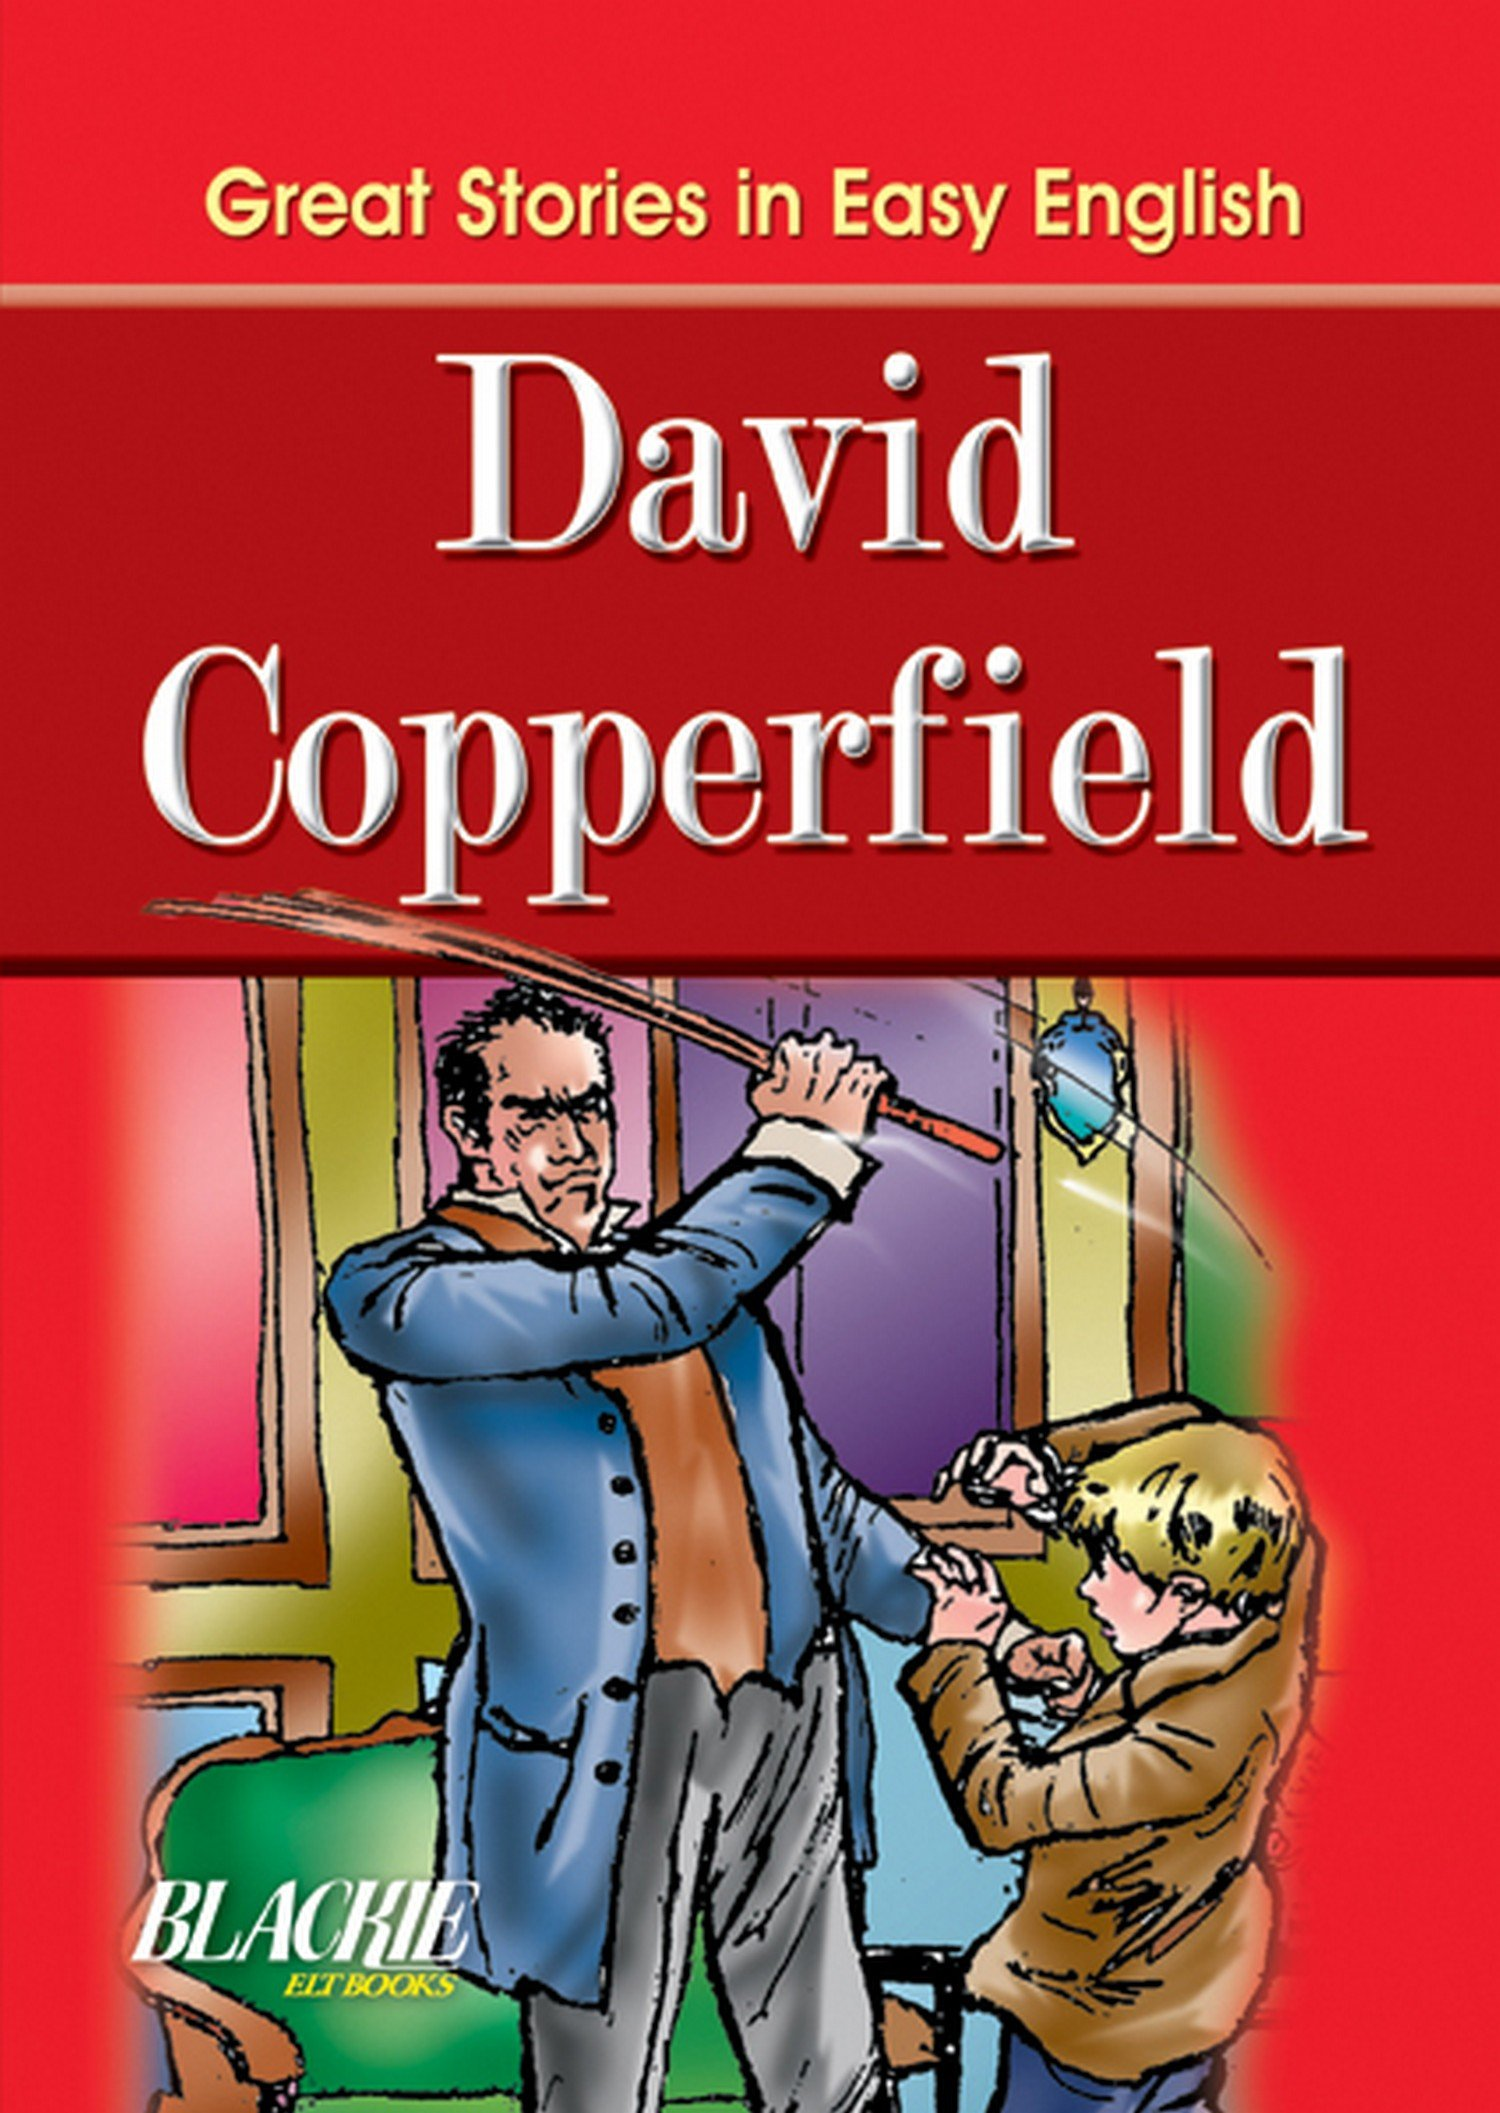 buy david copperfield book online at low prices in david  buy david copperfield book online at low prices in david copperfield reviews ratings in